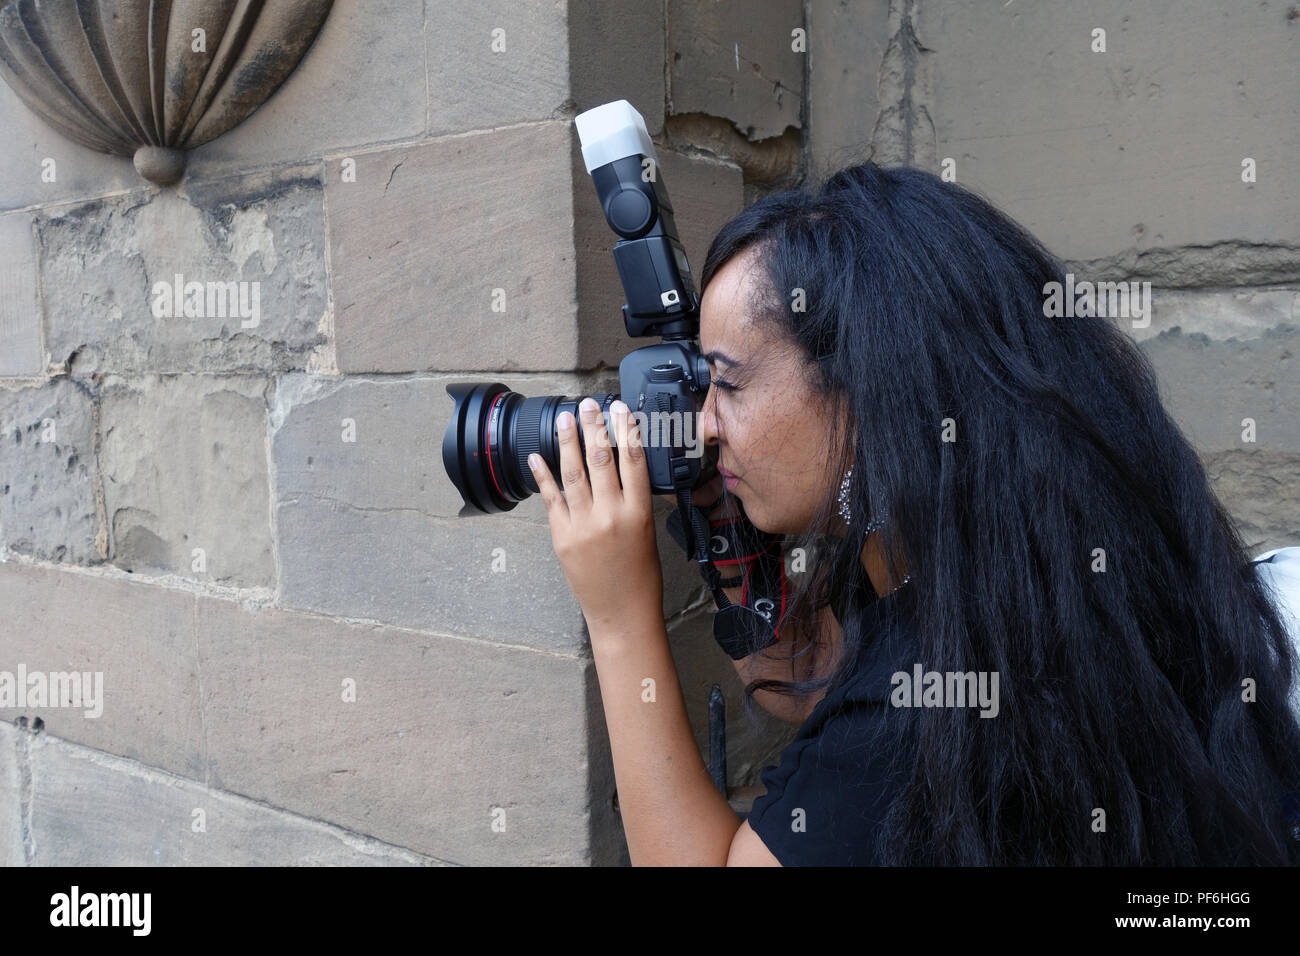 Side view of Female professional photographer using her camera and flash gun at a wedding - Stock Image